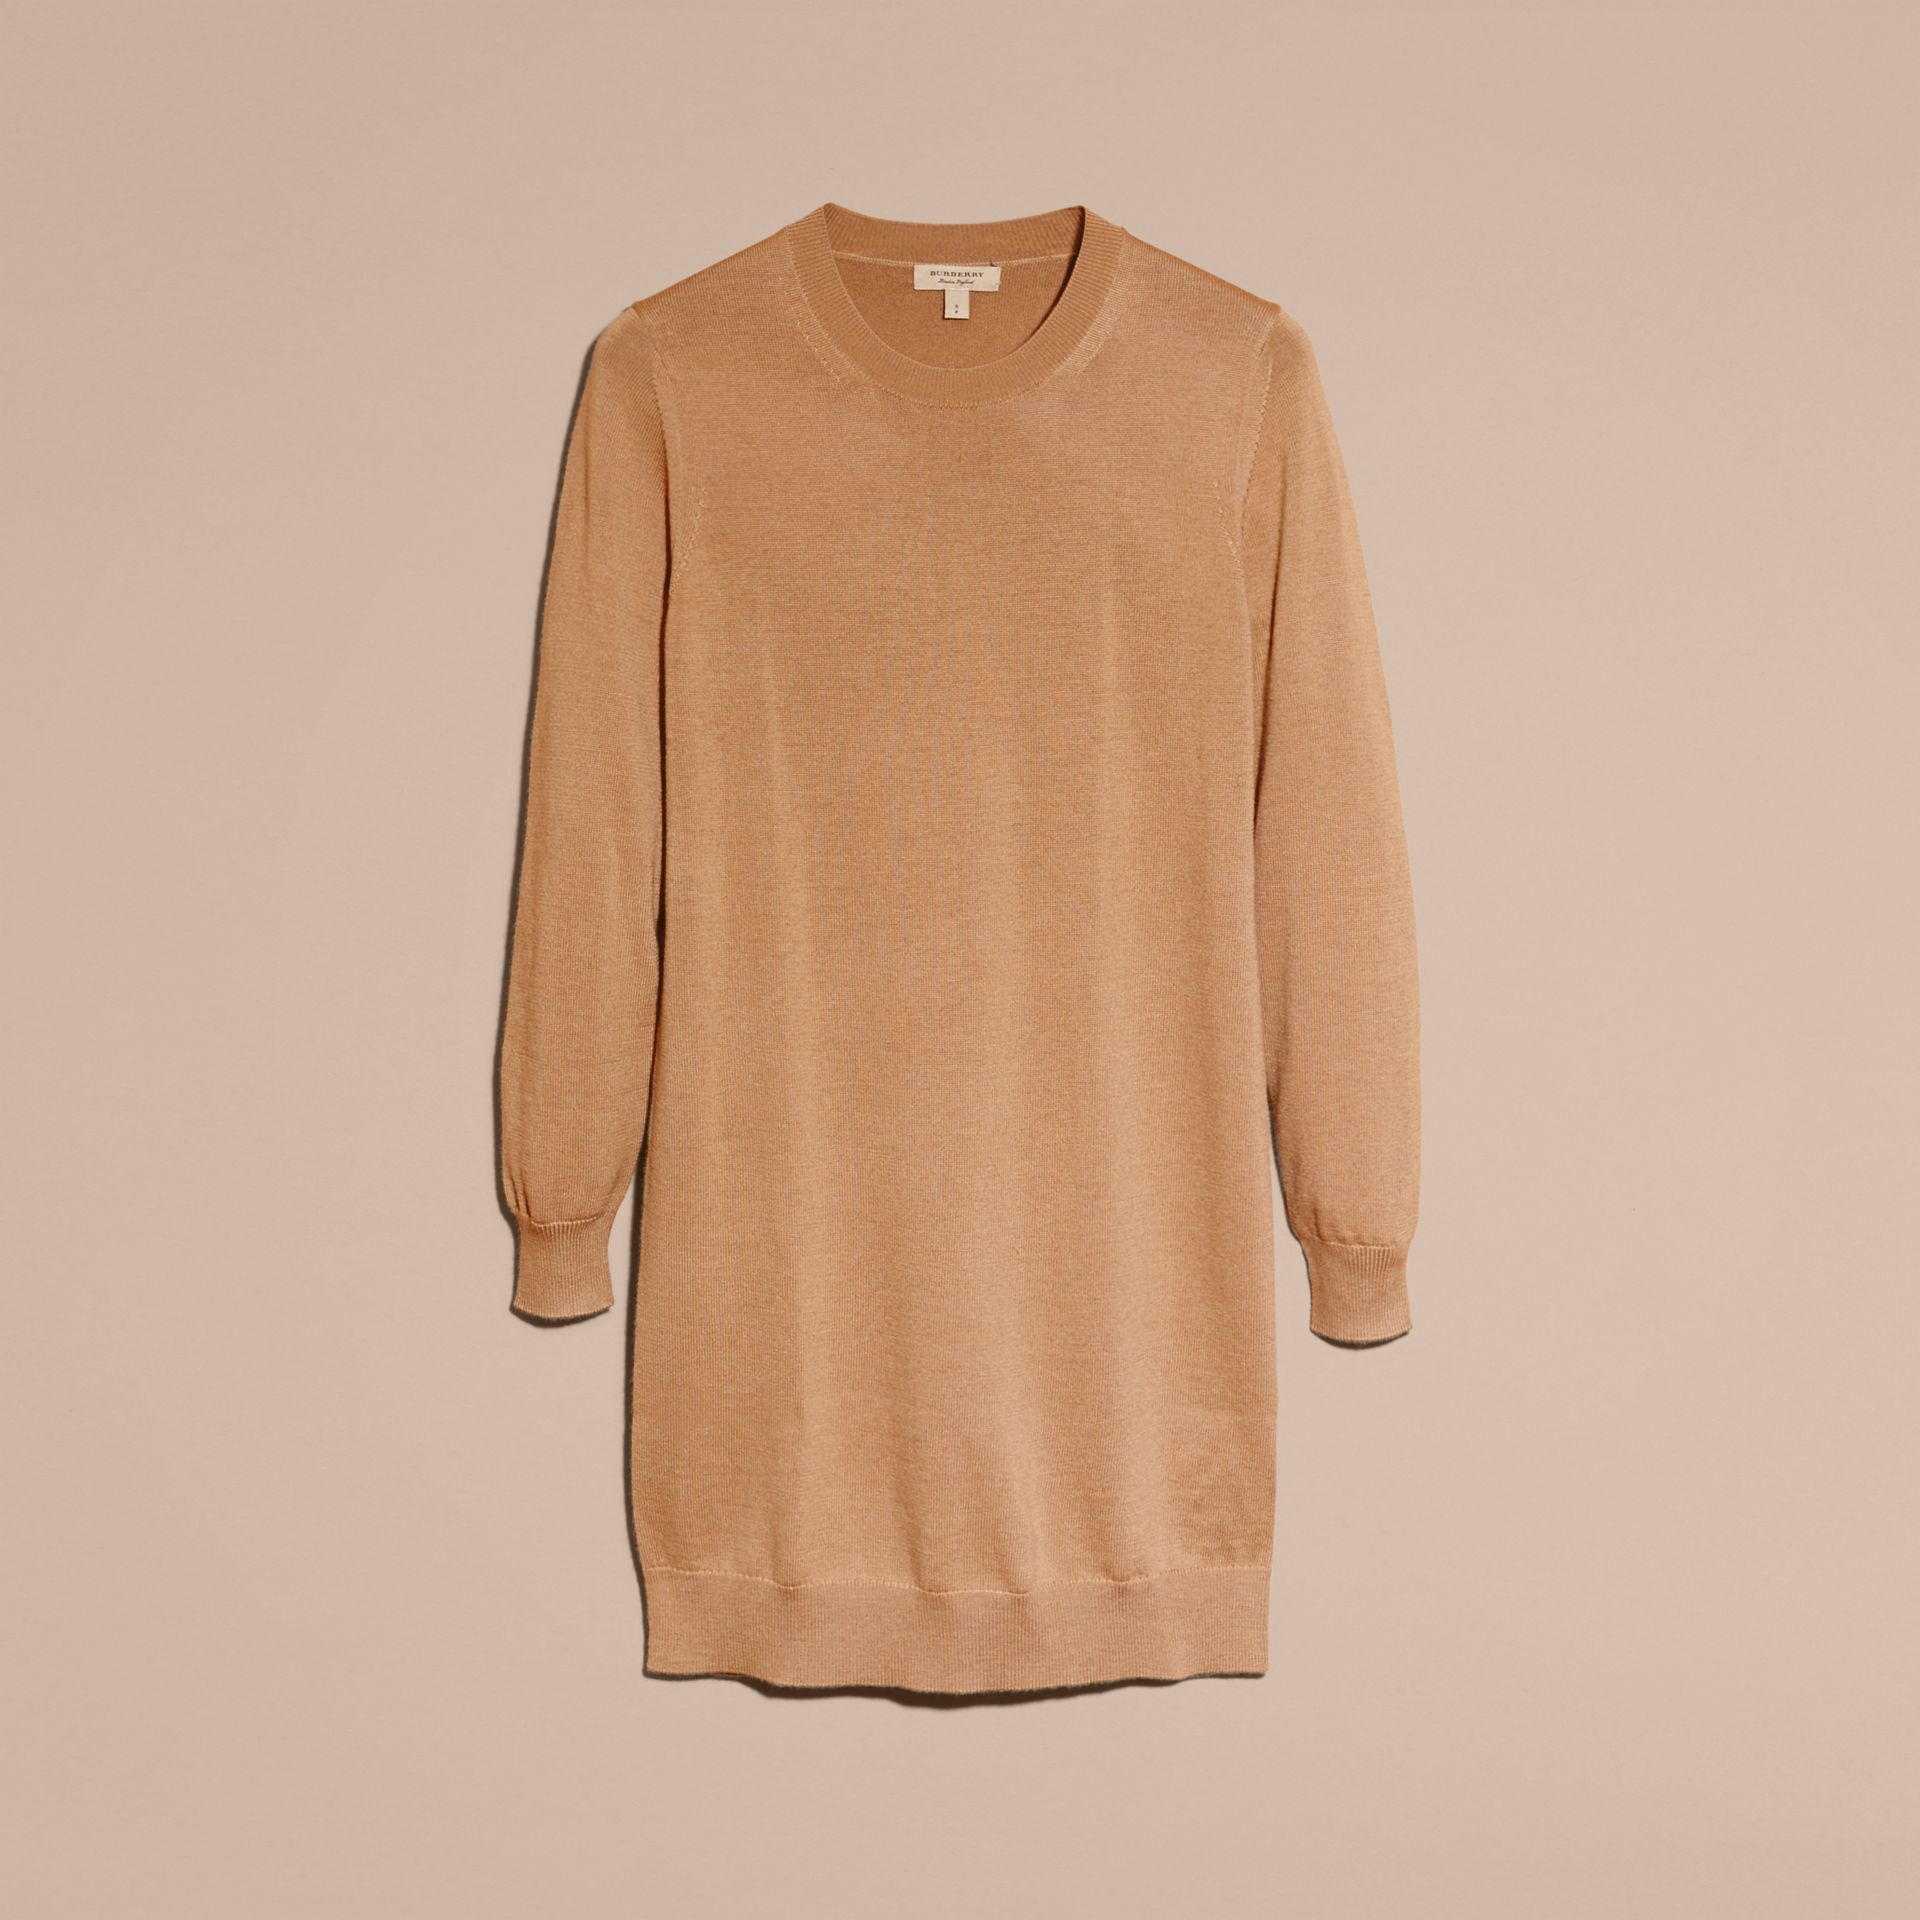 Check Elbow Detail Merino Wool Sweater Dress Camel - gallery image 4